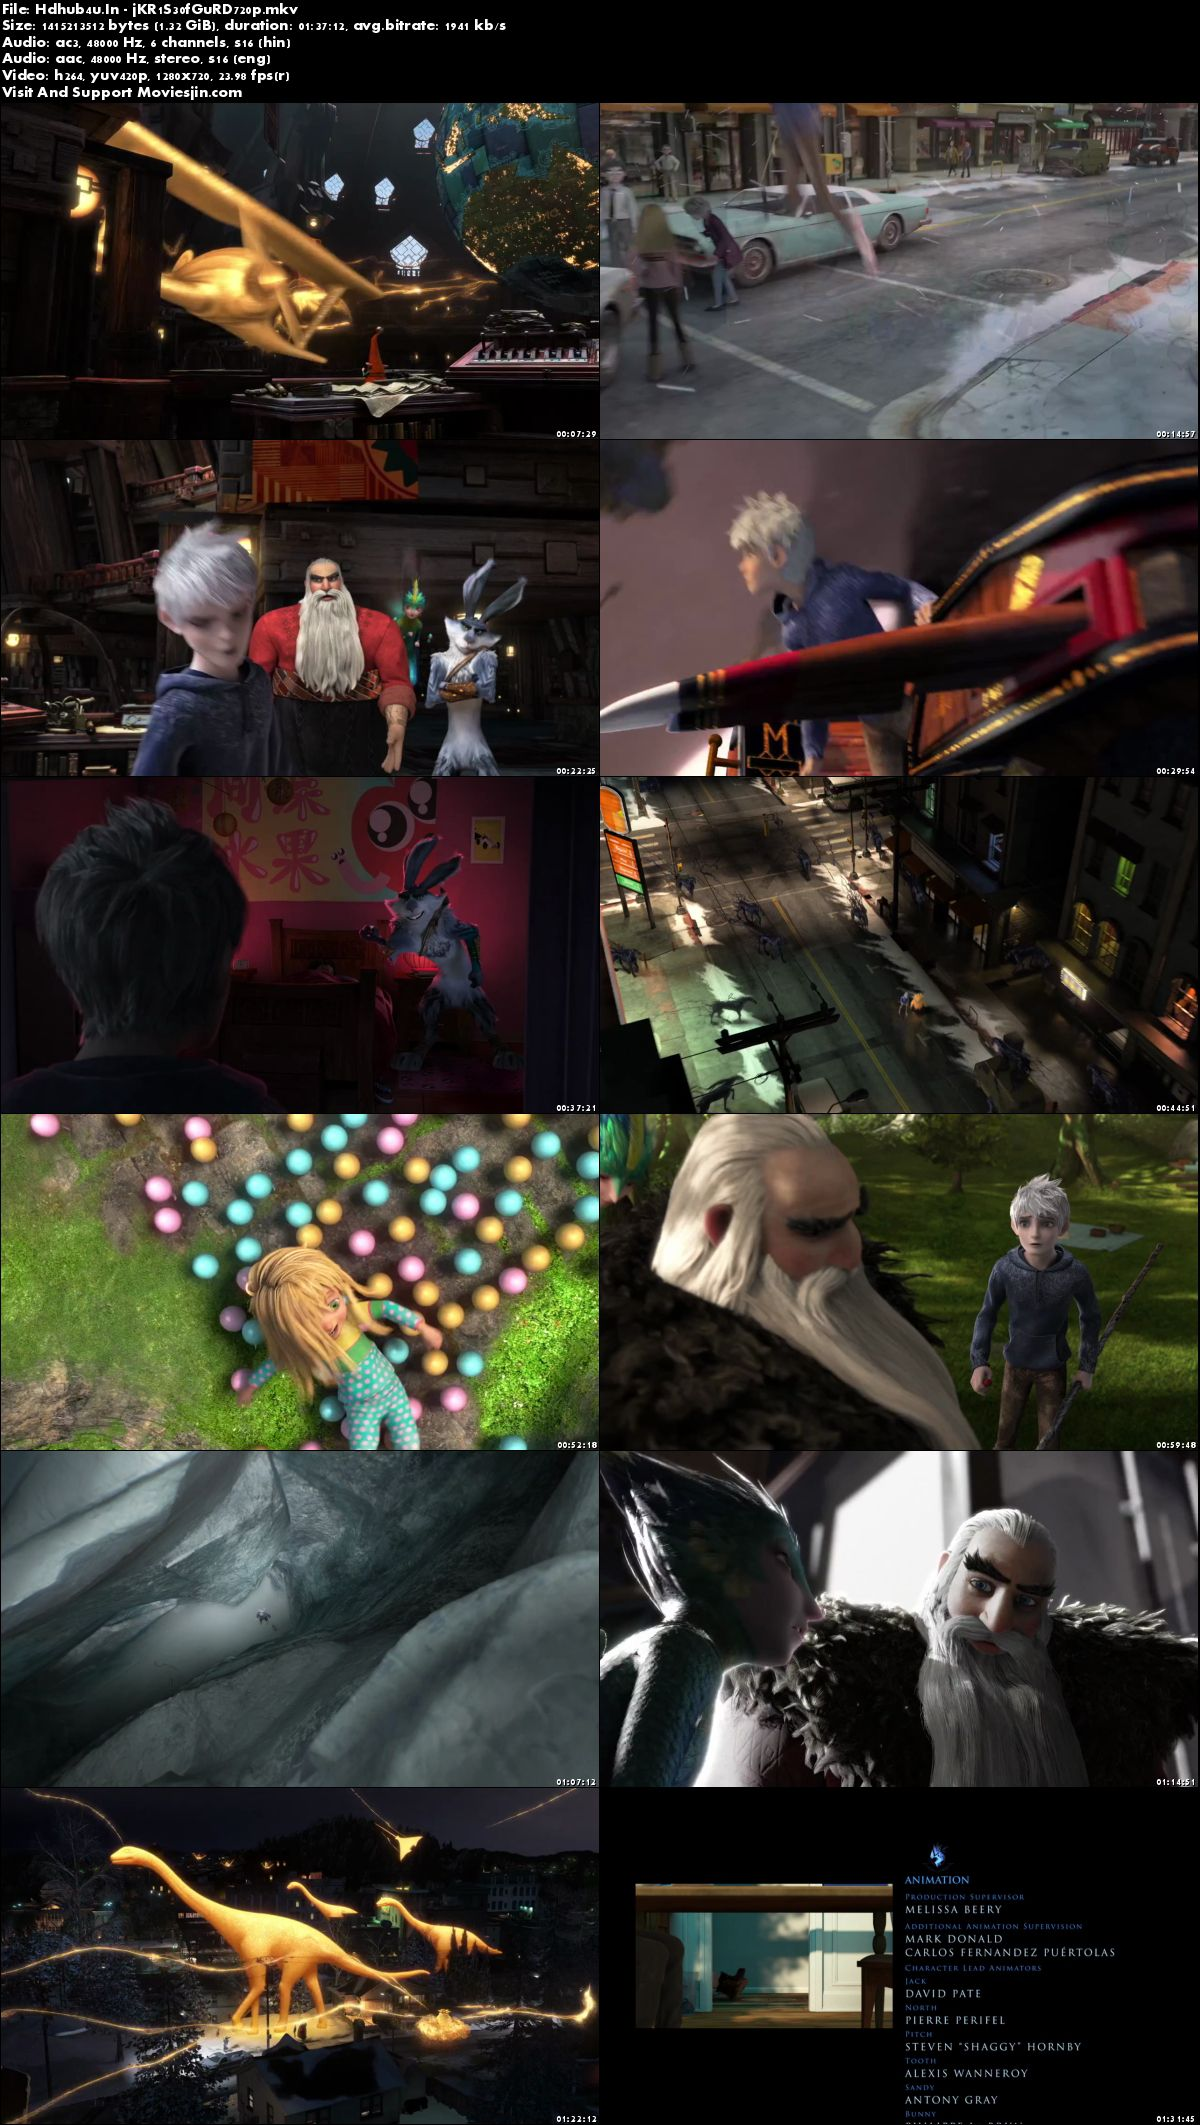 Watch Online Rise of The Guardians 2012 BRRip Movie Hindi ORG Dual Audio 720p Esub Full Movie Download mkvcage